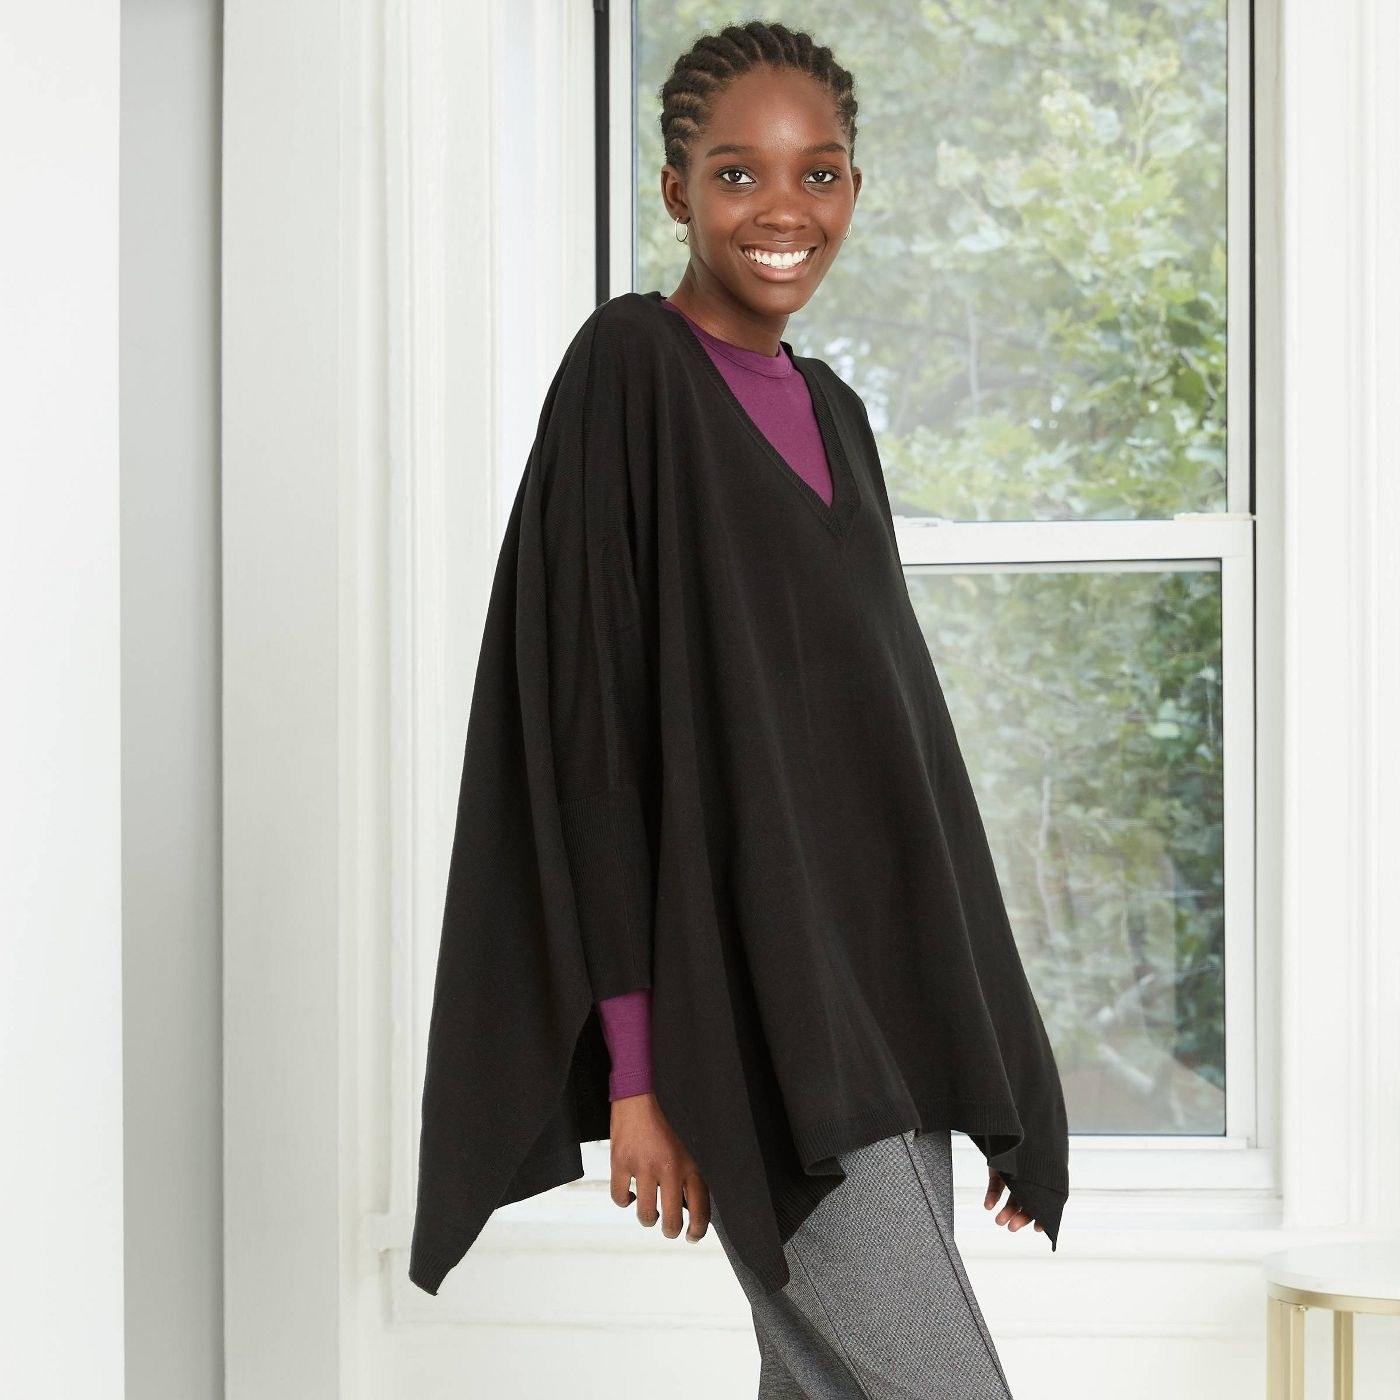 Model in a black V-neck poncho with a purple top underneath